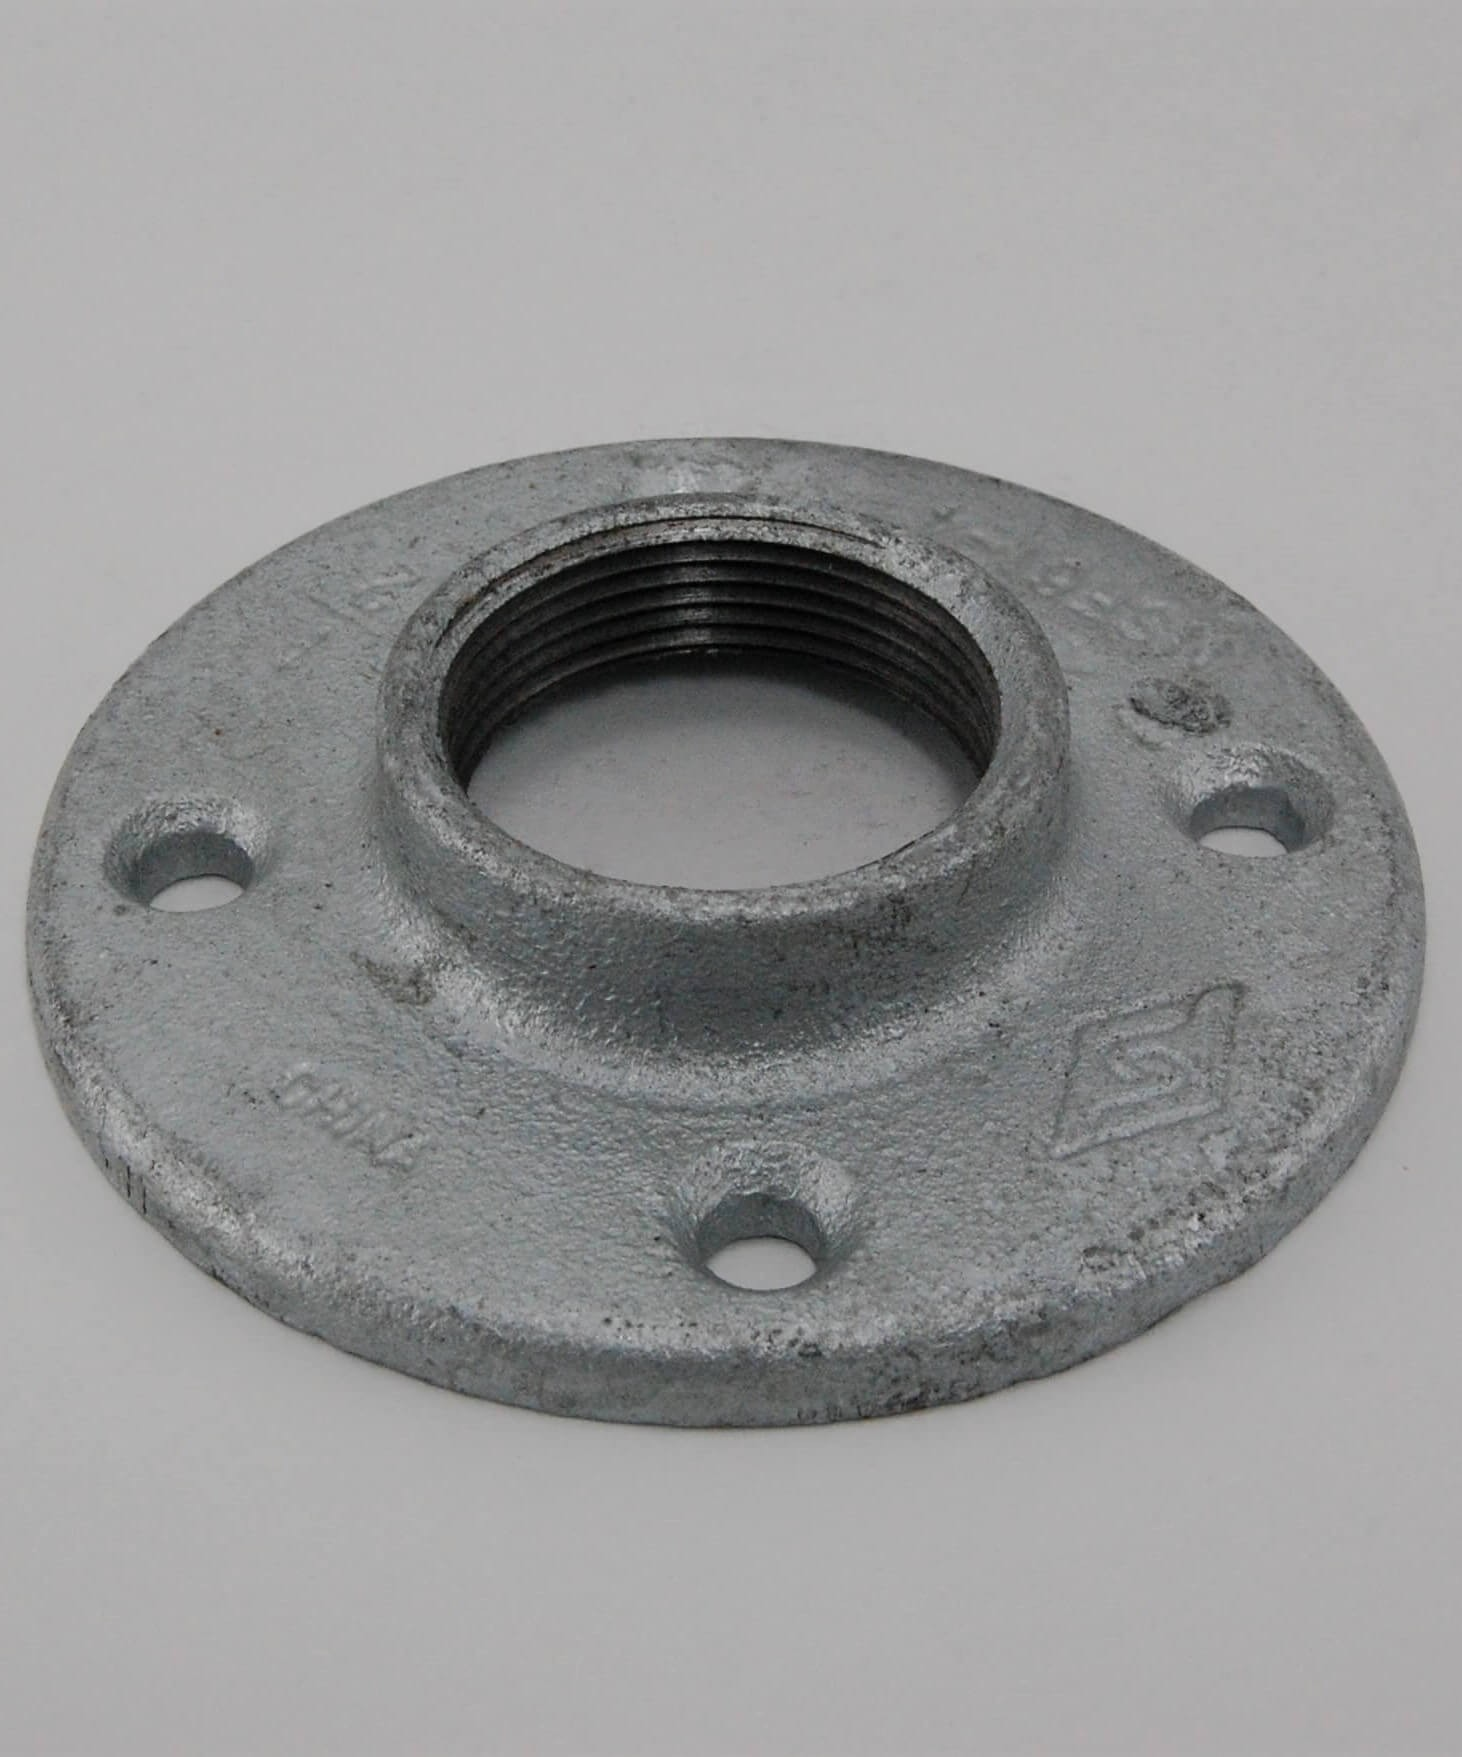 Galvanized floor flange pipe fittings